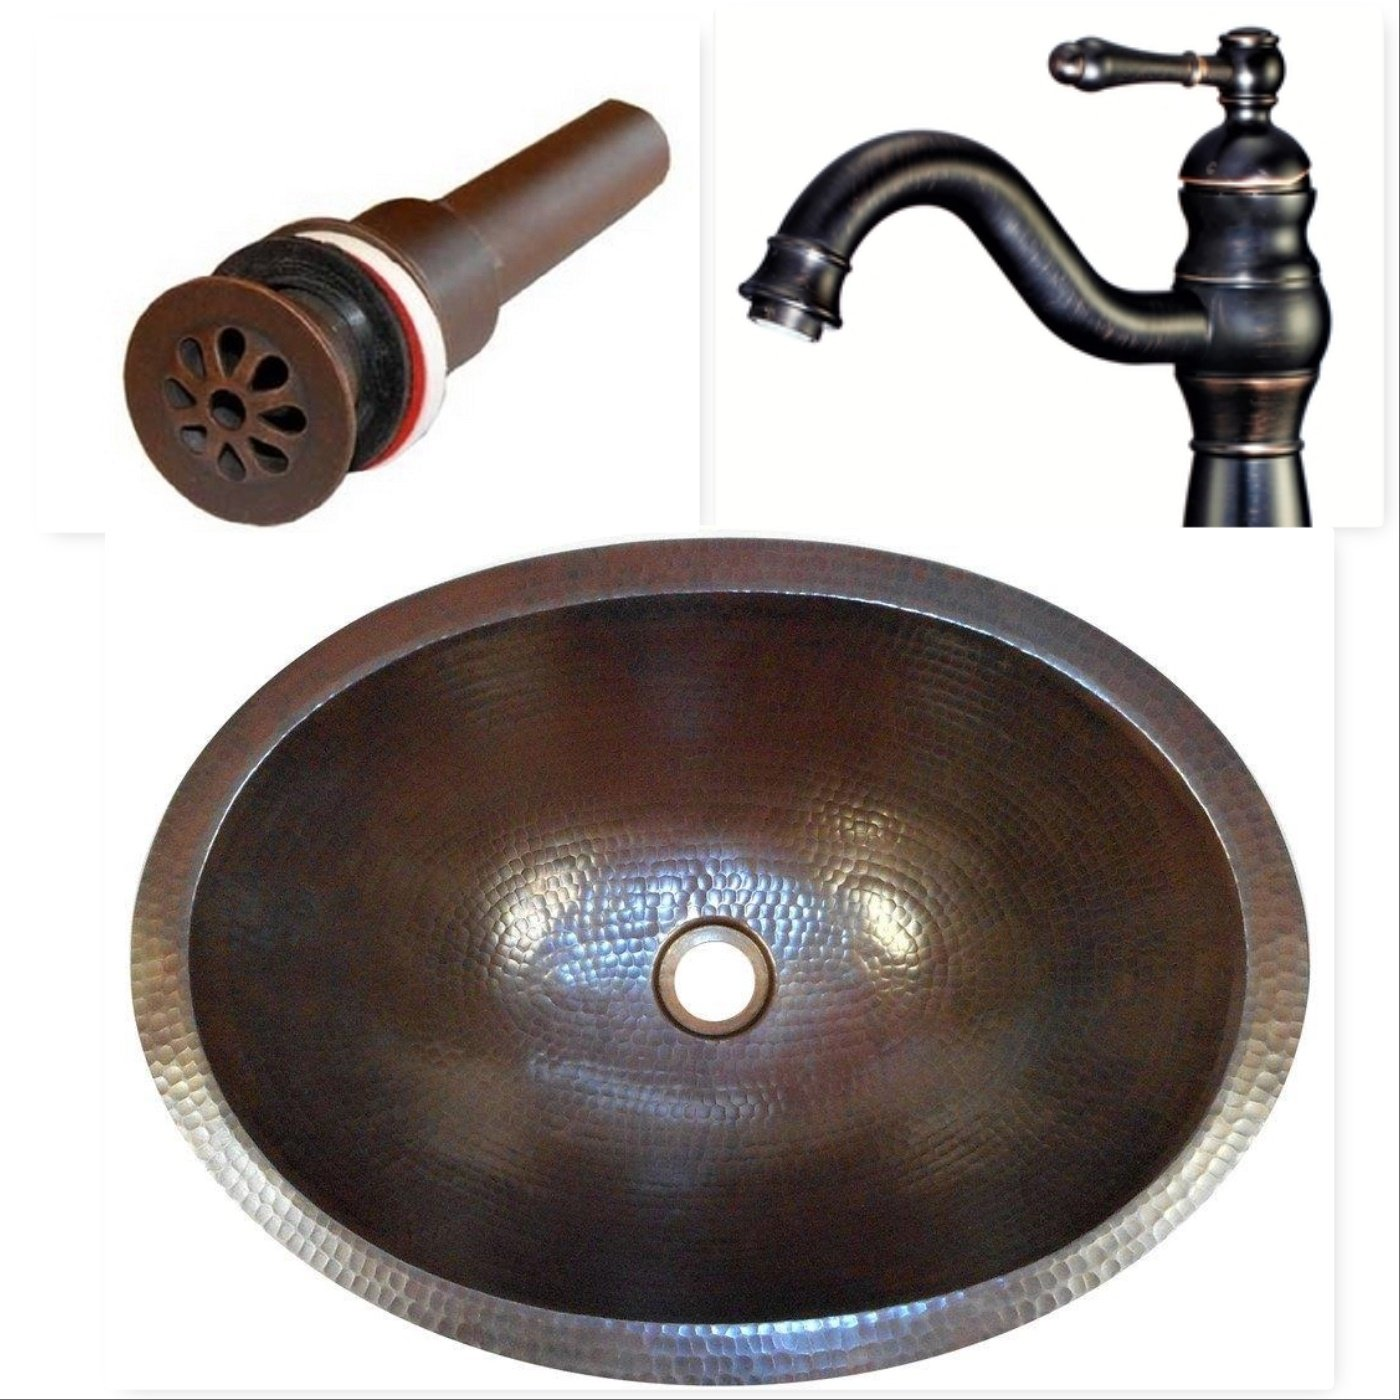 SimplyCopper 19'' Oval Copper Undermount or Drop In Bathroom Sink with Daisy Drain & ORB Faucet by SimplyCopper